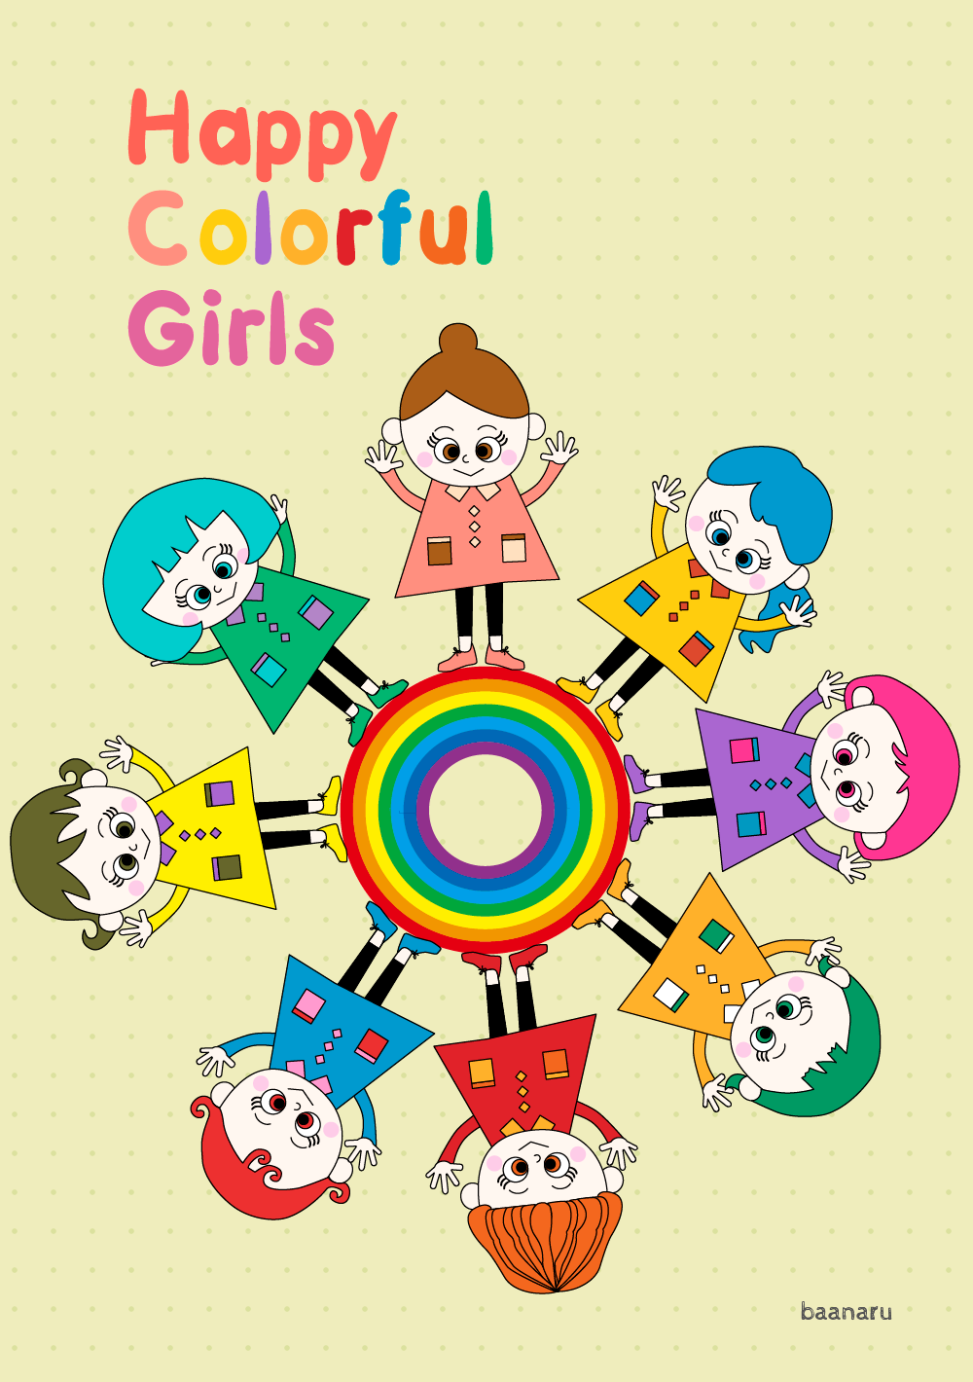 Happy Colorful Girls